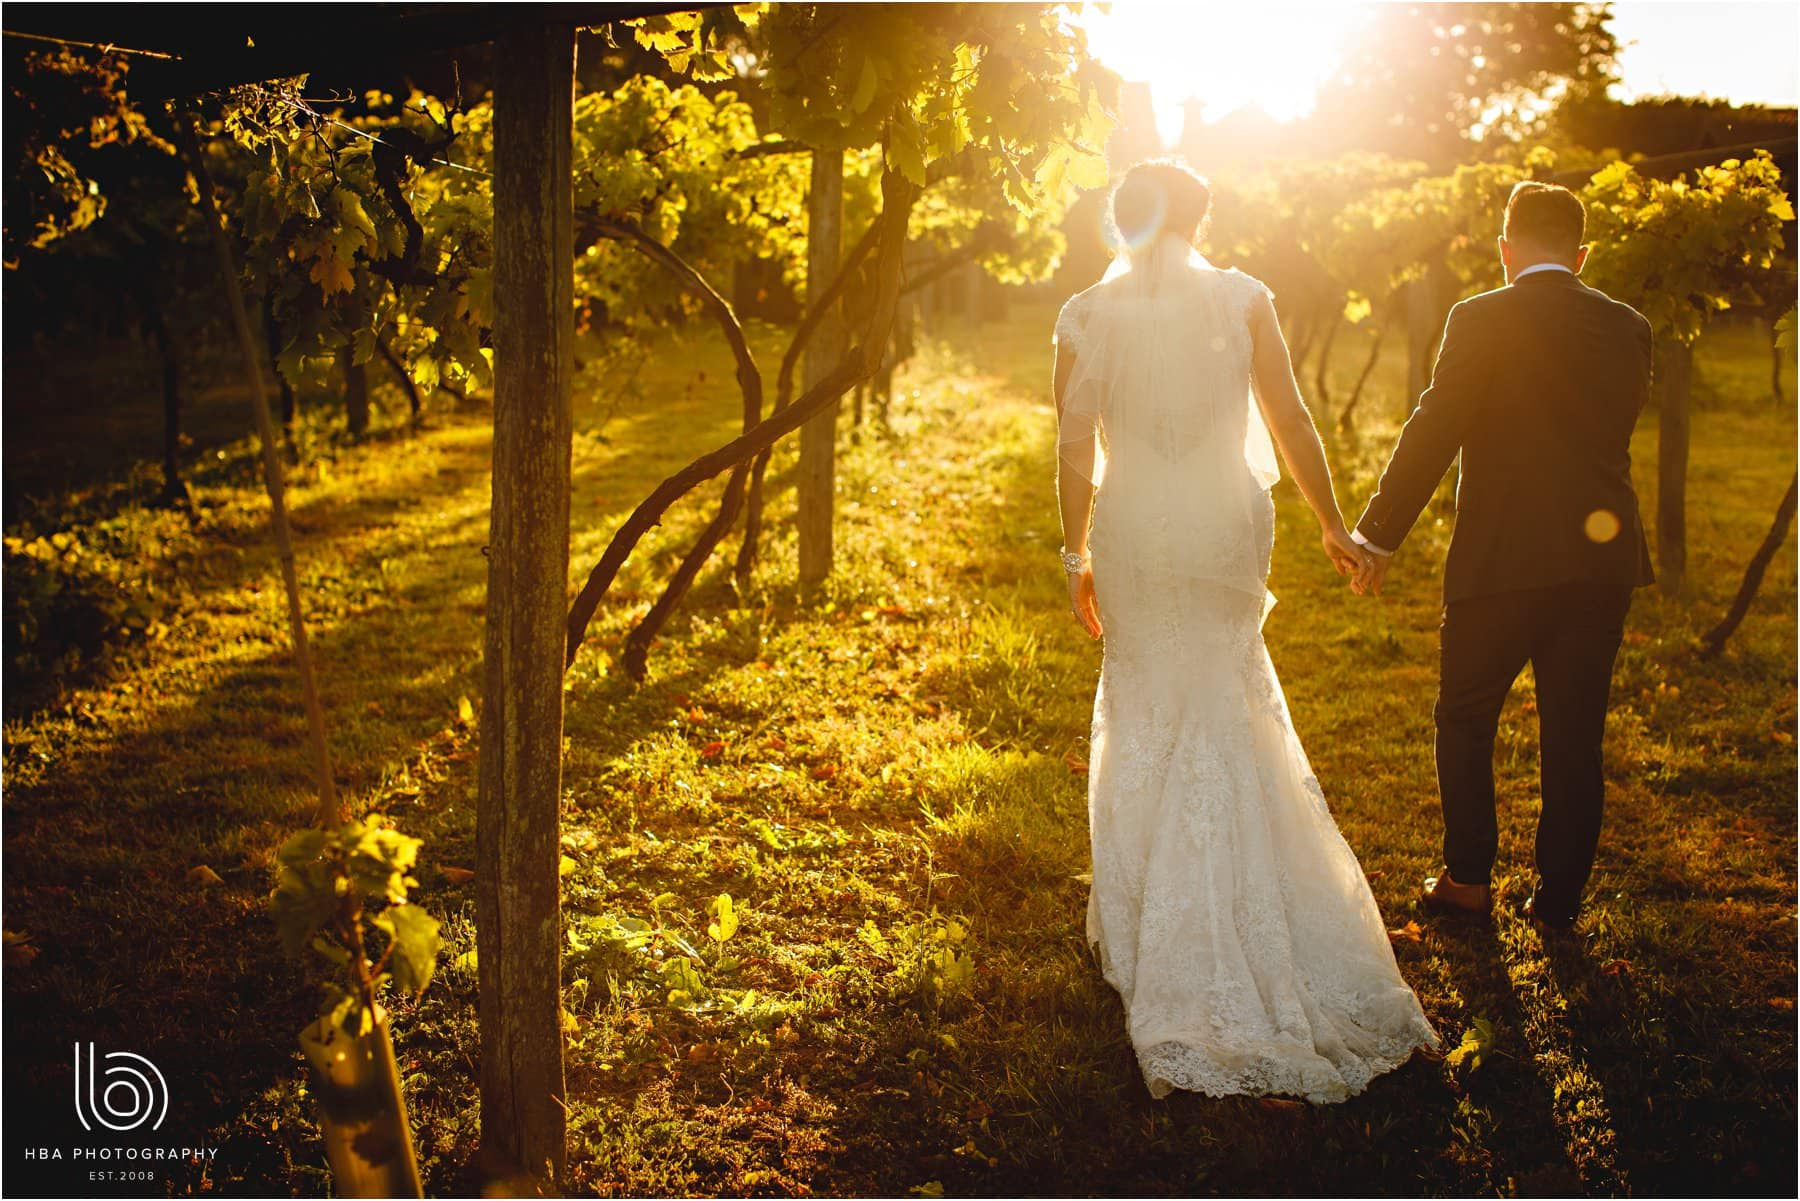 the bride and groom at golden hour